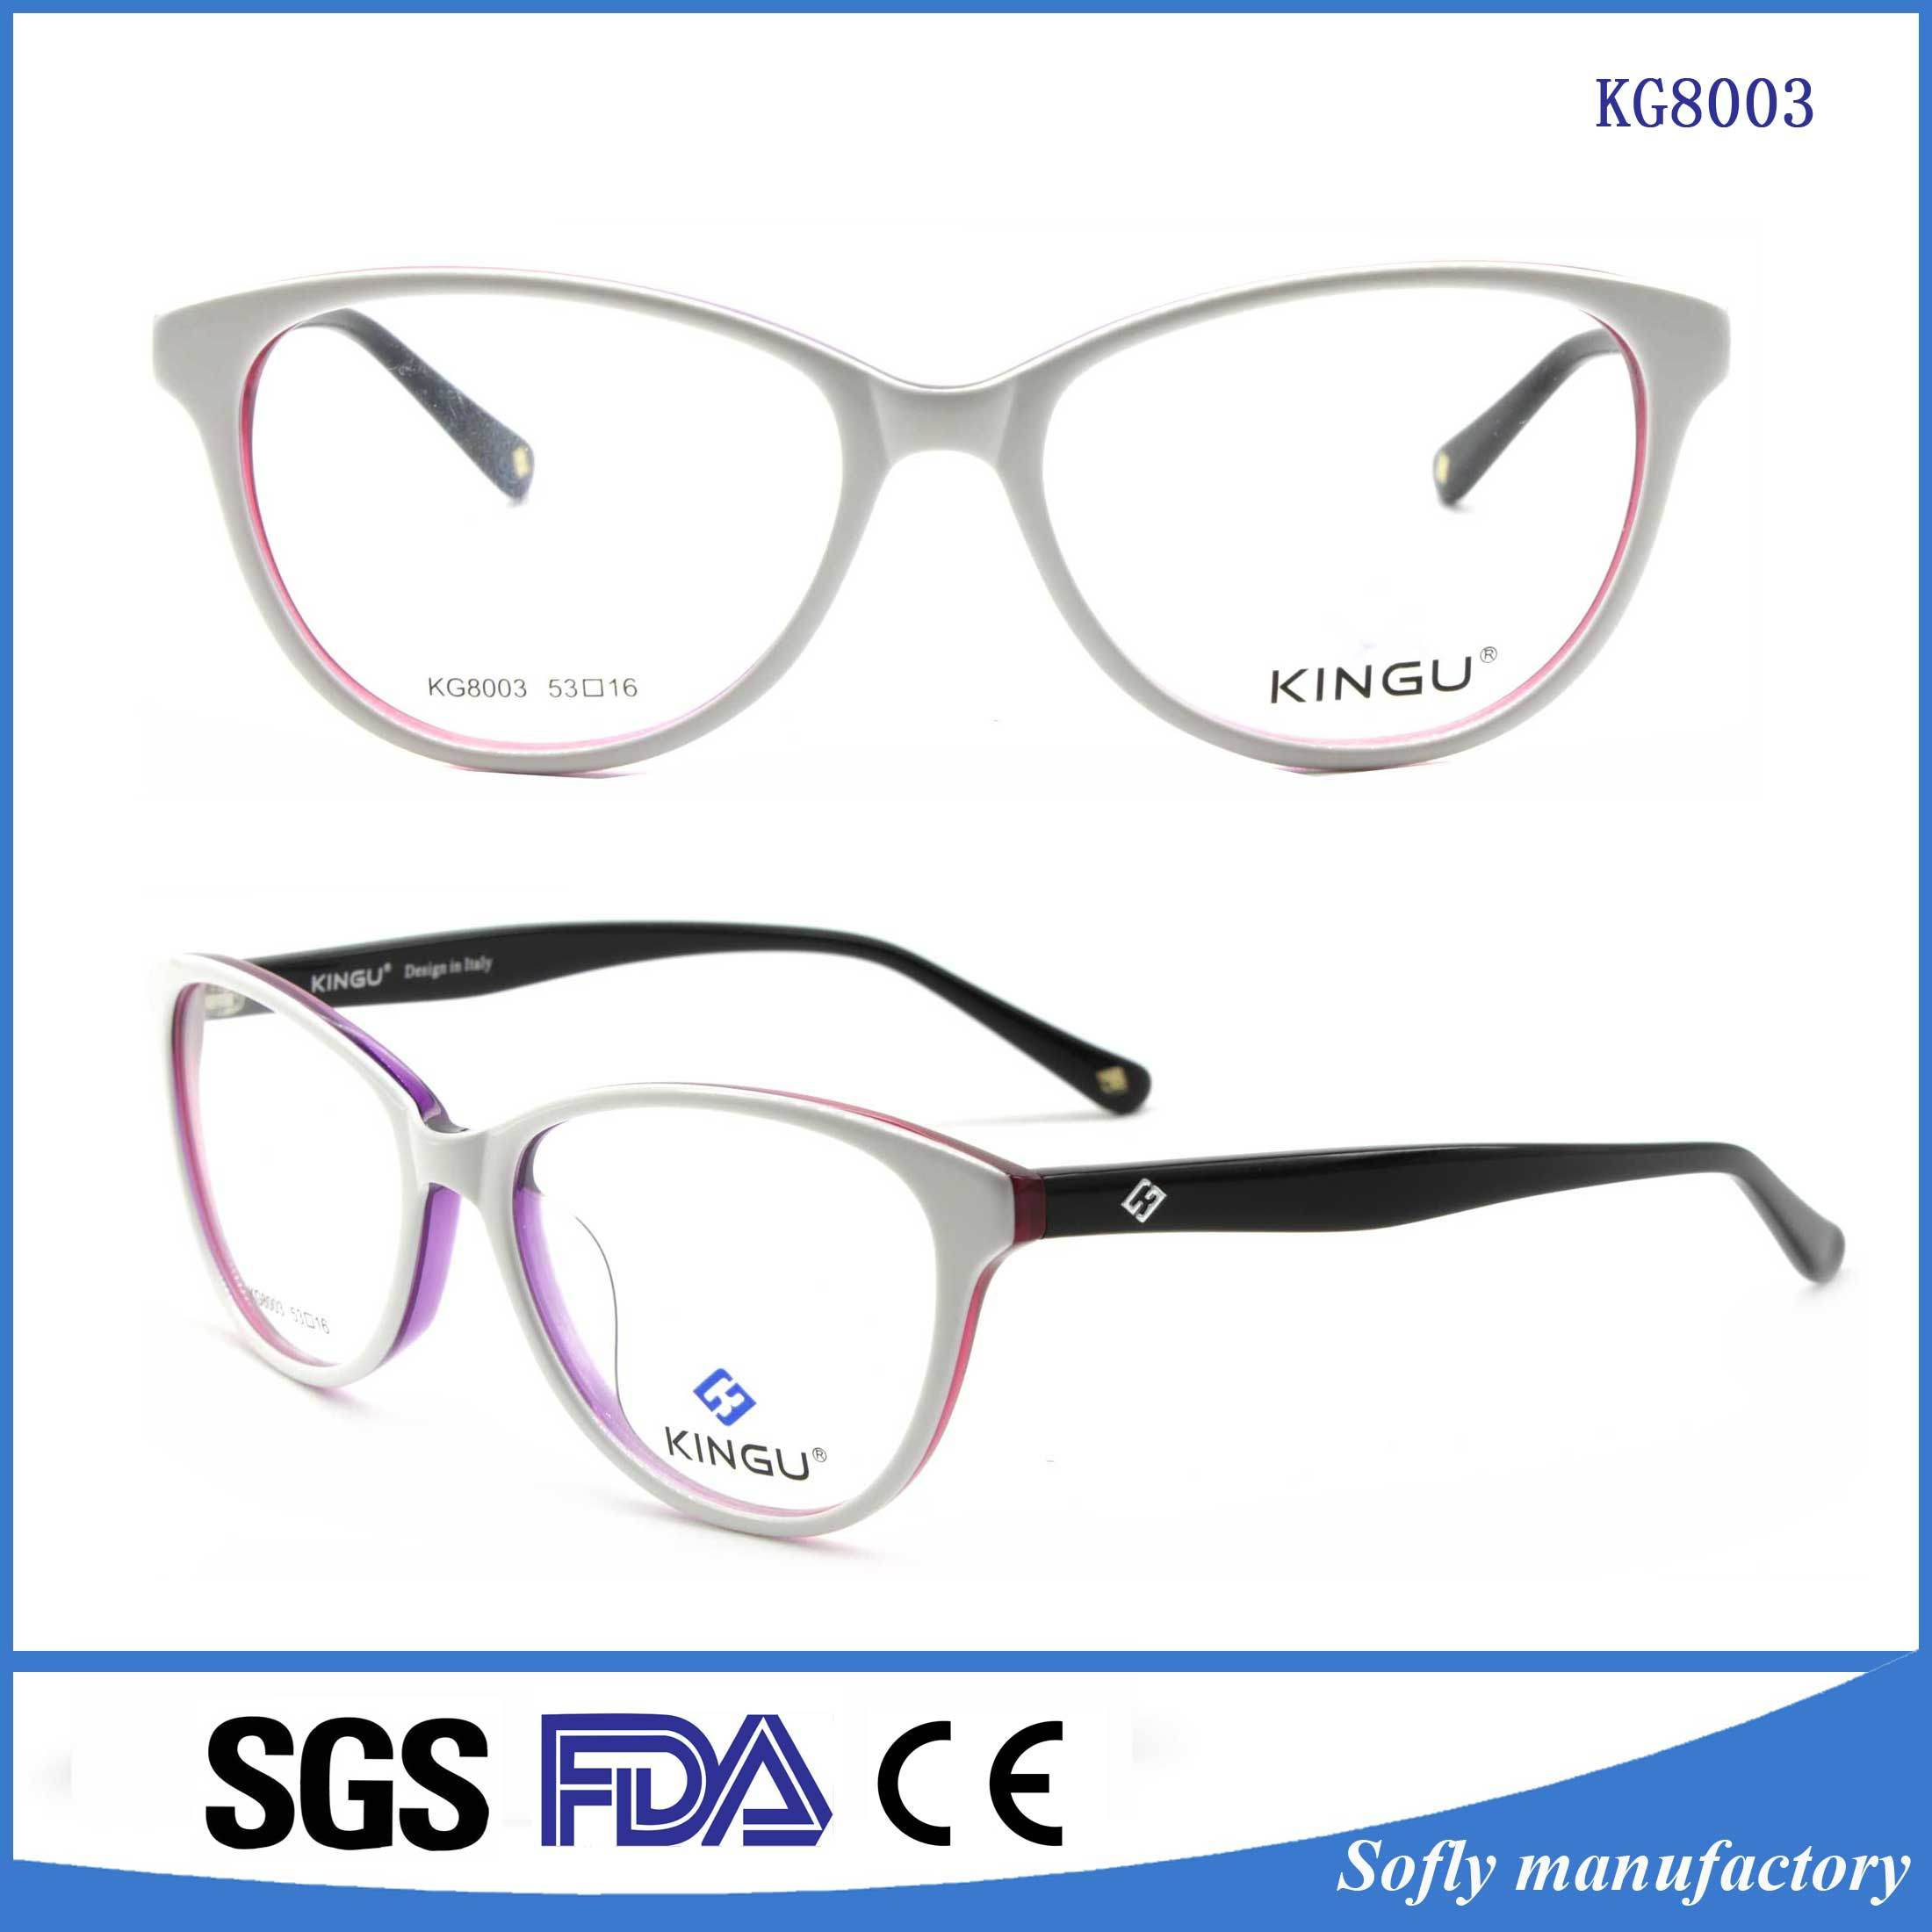 New Trend Eyejoy Spectacles Optical Frames Wholesale at Stock